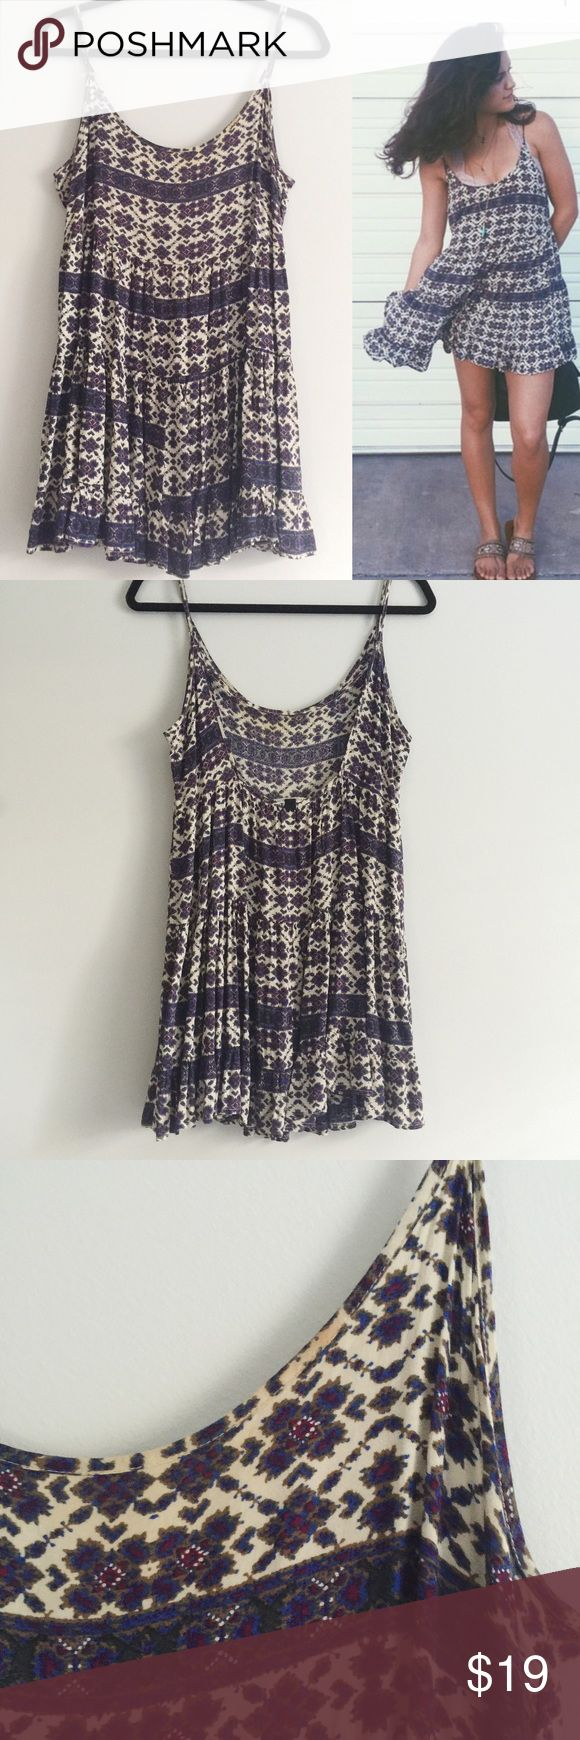 "Purple Bohemian Print Jada Dress Brandy Melville Jada dress in the purple bohemian print as seen on MTV Teen Wolf actress Victoria Moroles. Has adjustable straps that vary the length from 25"" to 30"". Tiered babydoll style with a purple and tan tribal print. Sold out online and in Brandy stores. Makeup stain pictured in the third photo. Brandy Melville Dresses Mini"